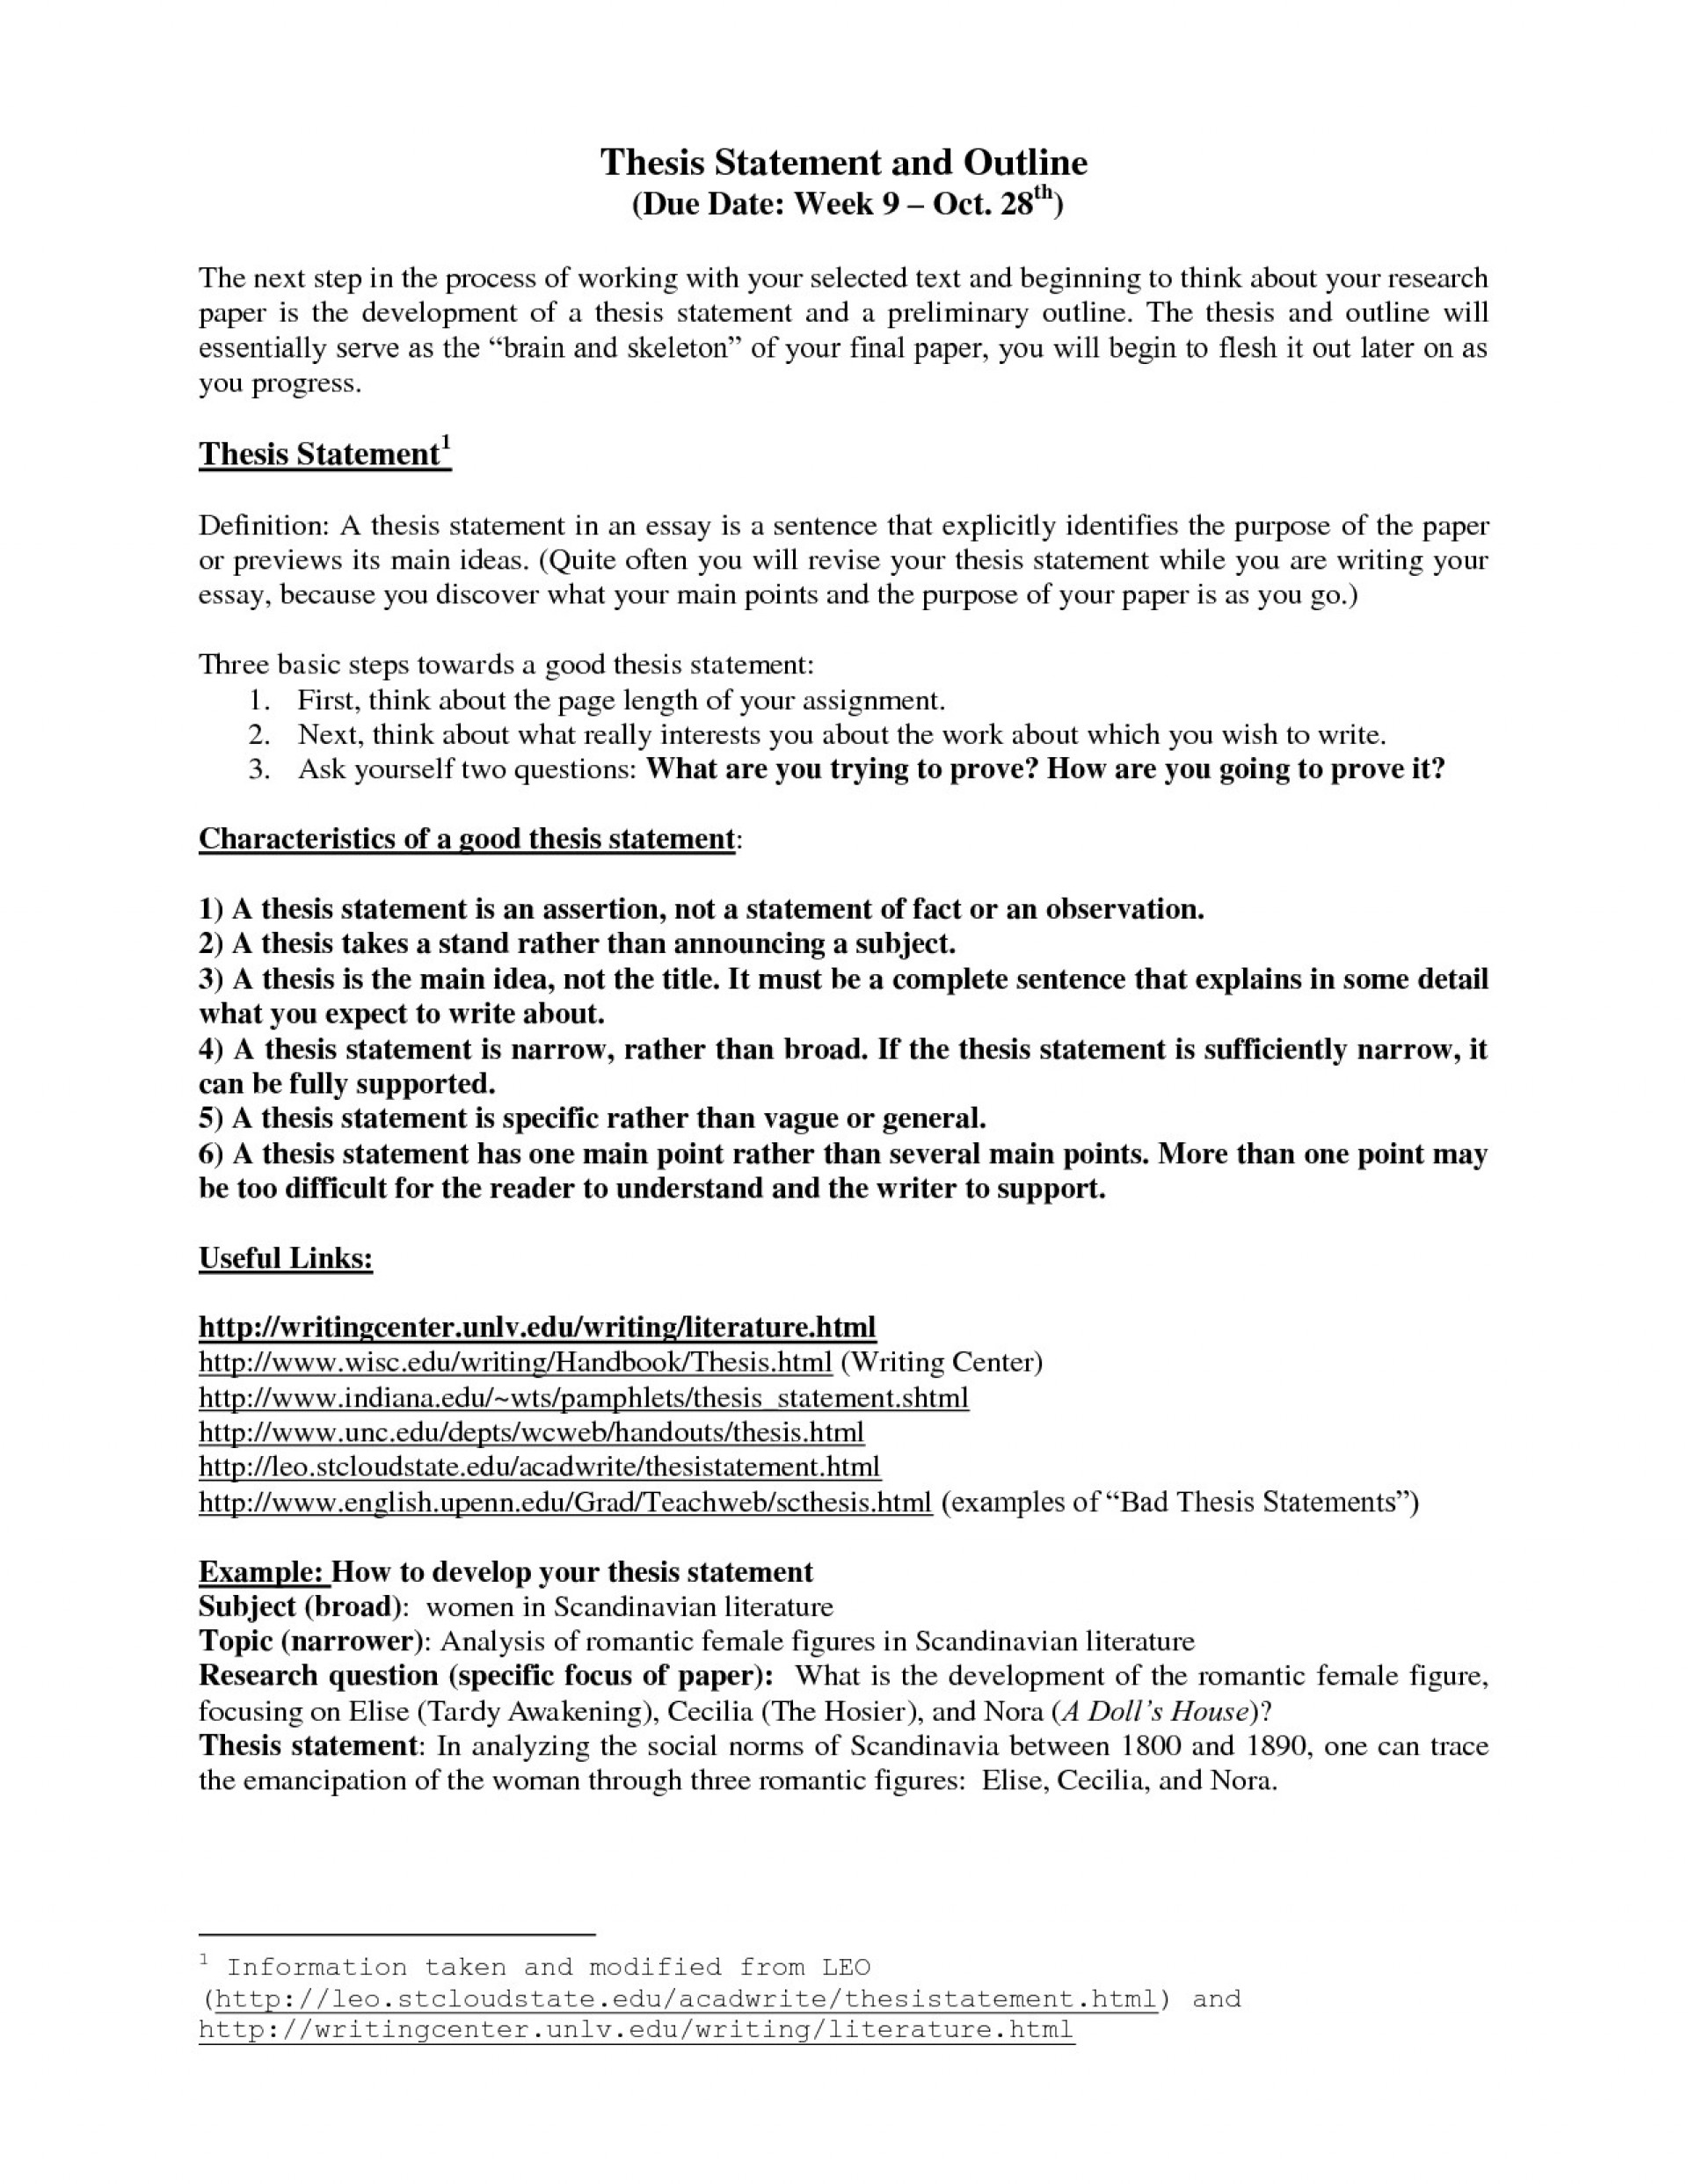 012 Essay Example Steps To Writing An Argumentative Thesis Statements For Essays Valid Statement Examples Within Marvelous What Is The Second Step In Prewriting Process Easy Write Flow Chart Shows Some Of 1920